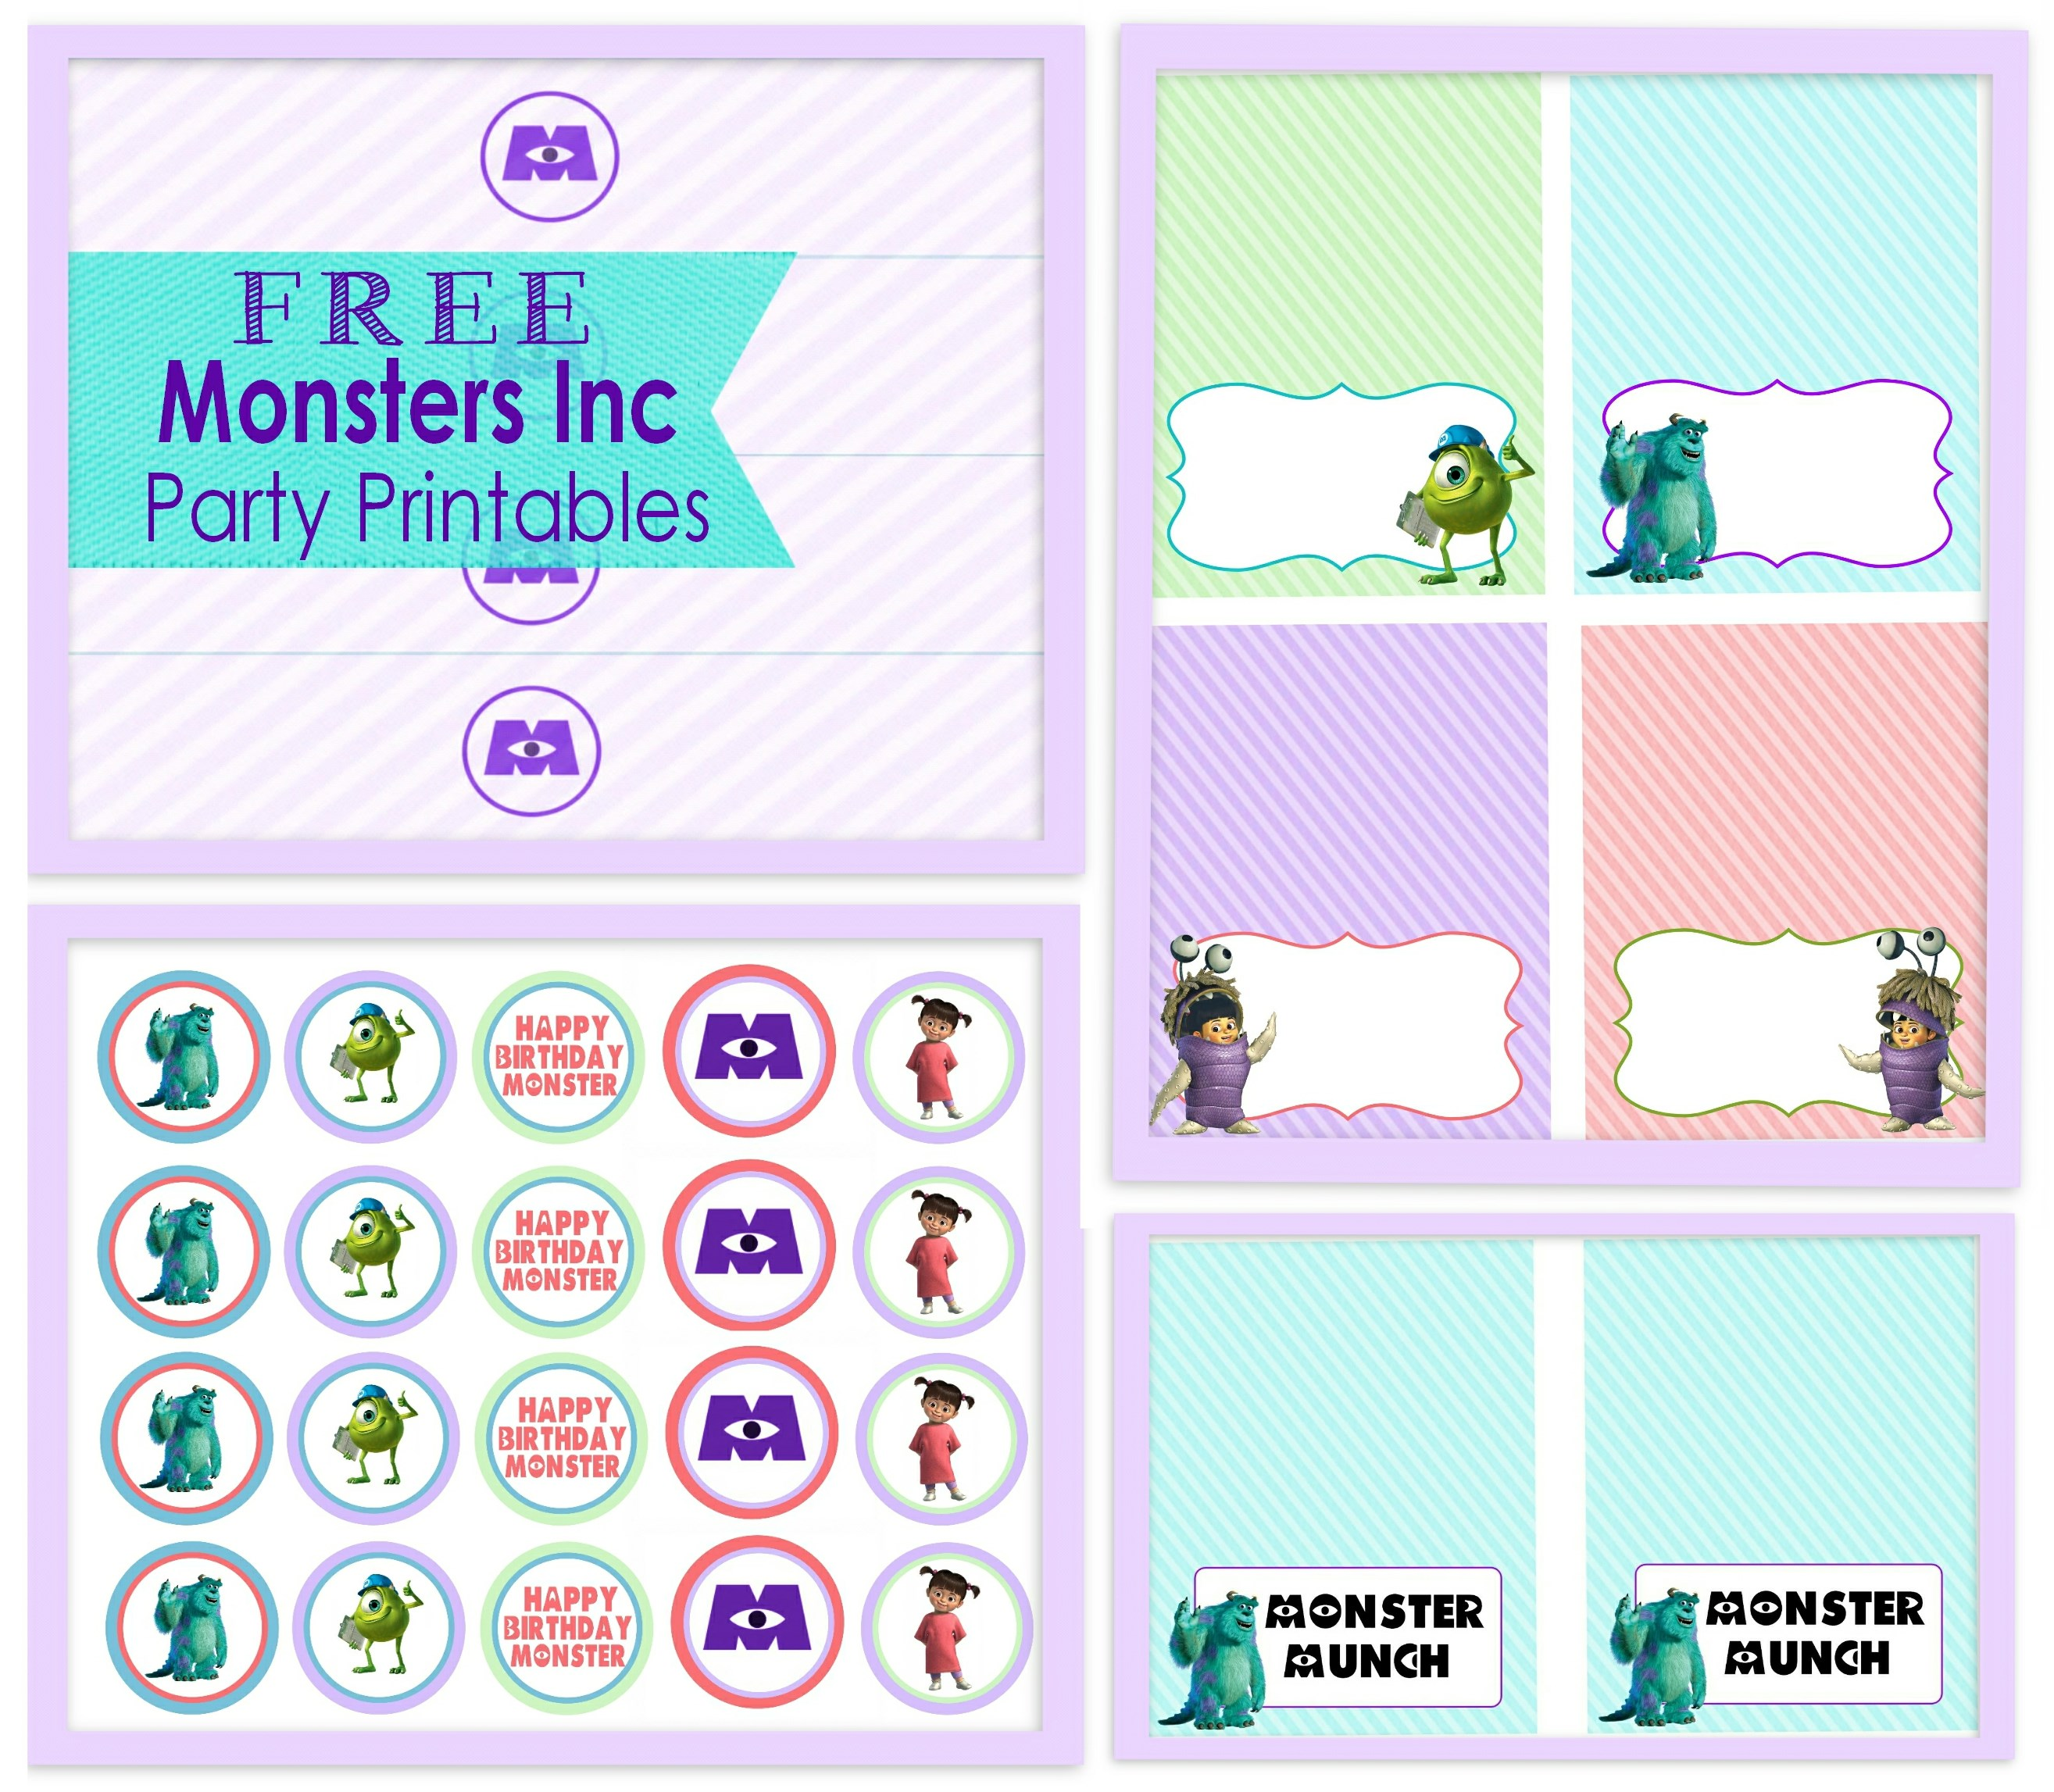 This is an image of Adorable Monsters Inc Door Printables